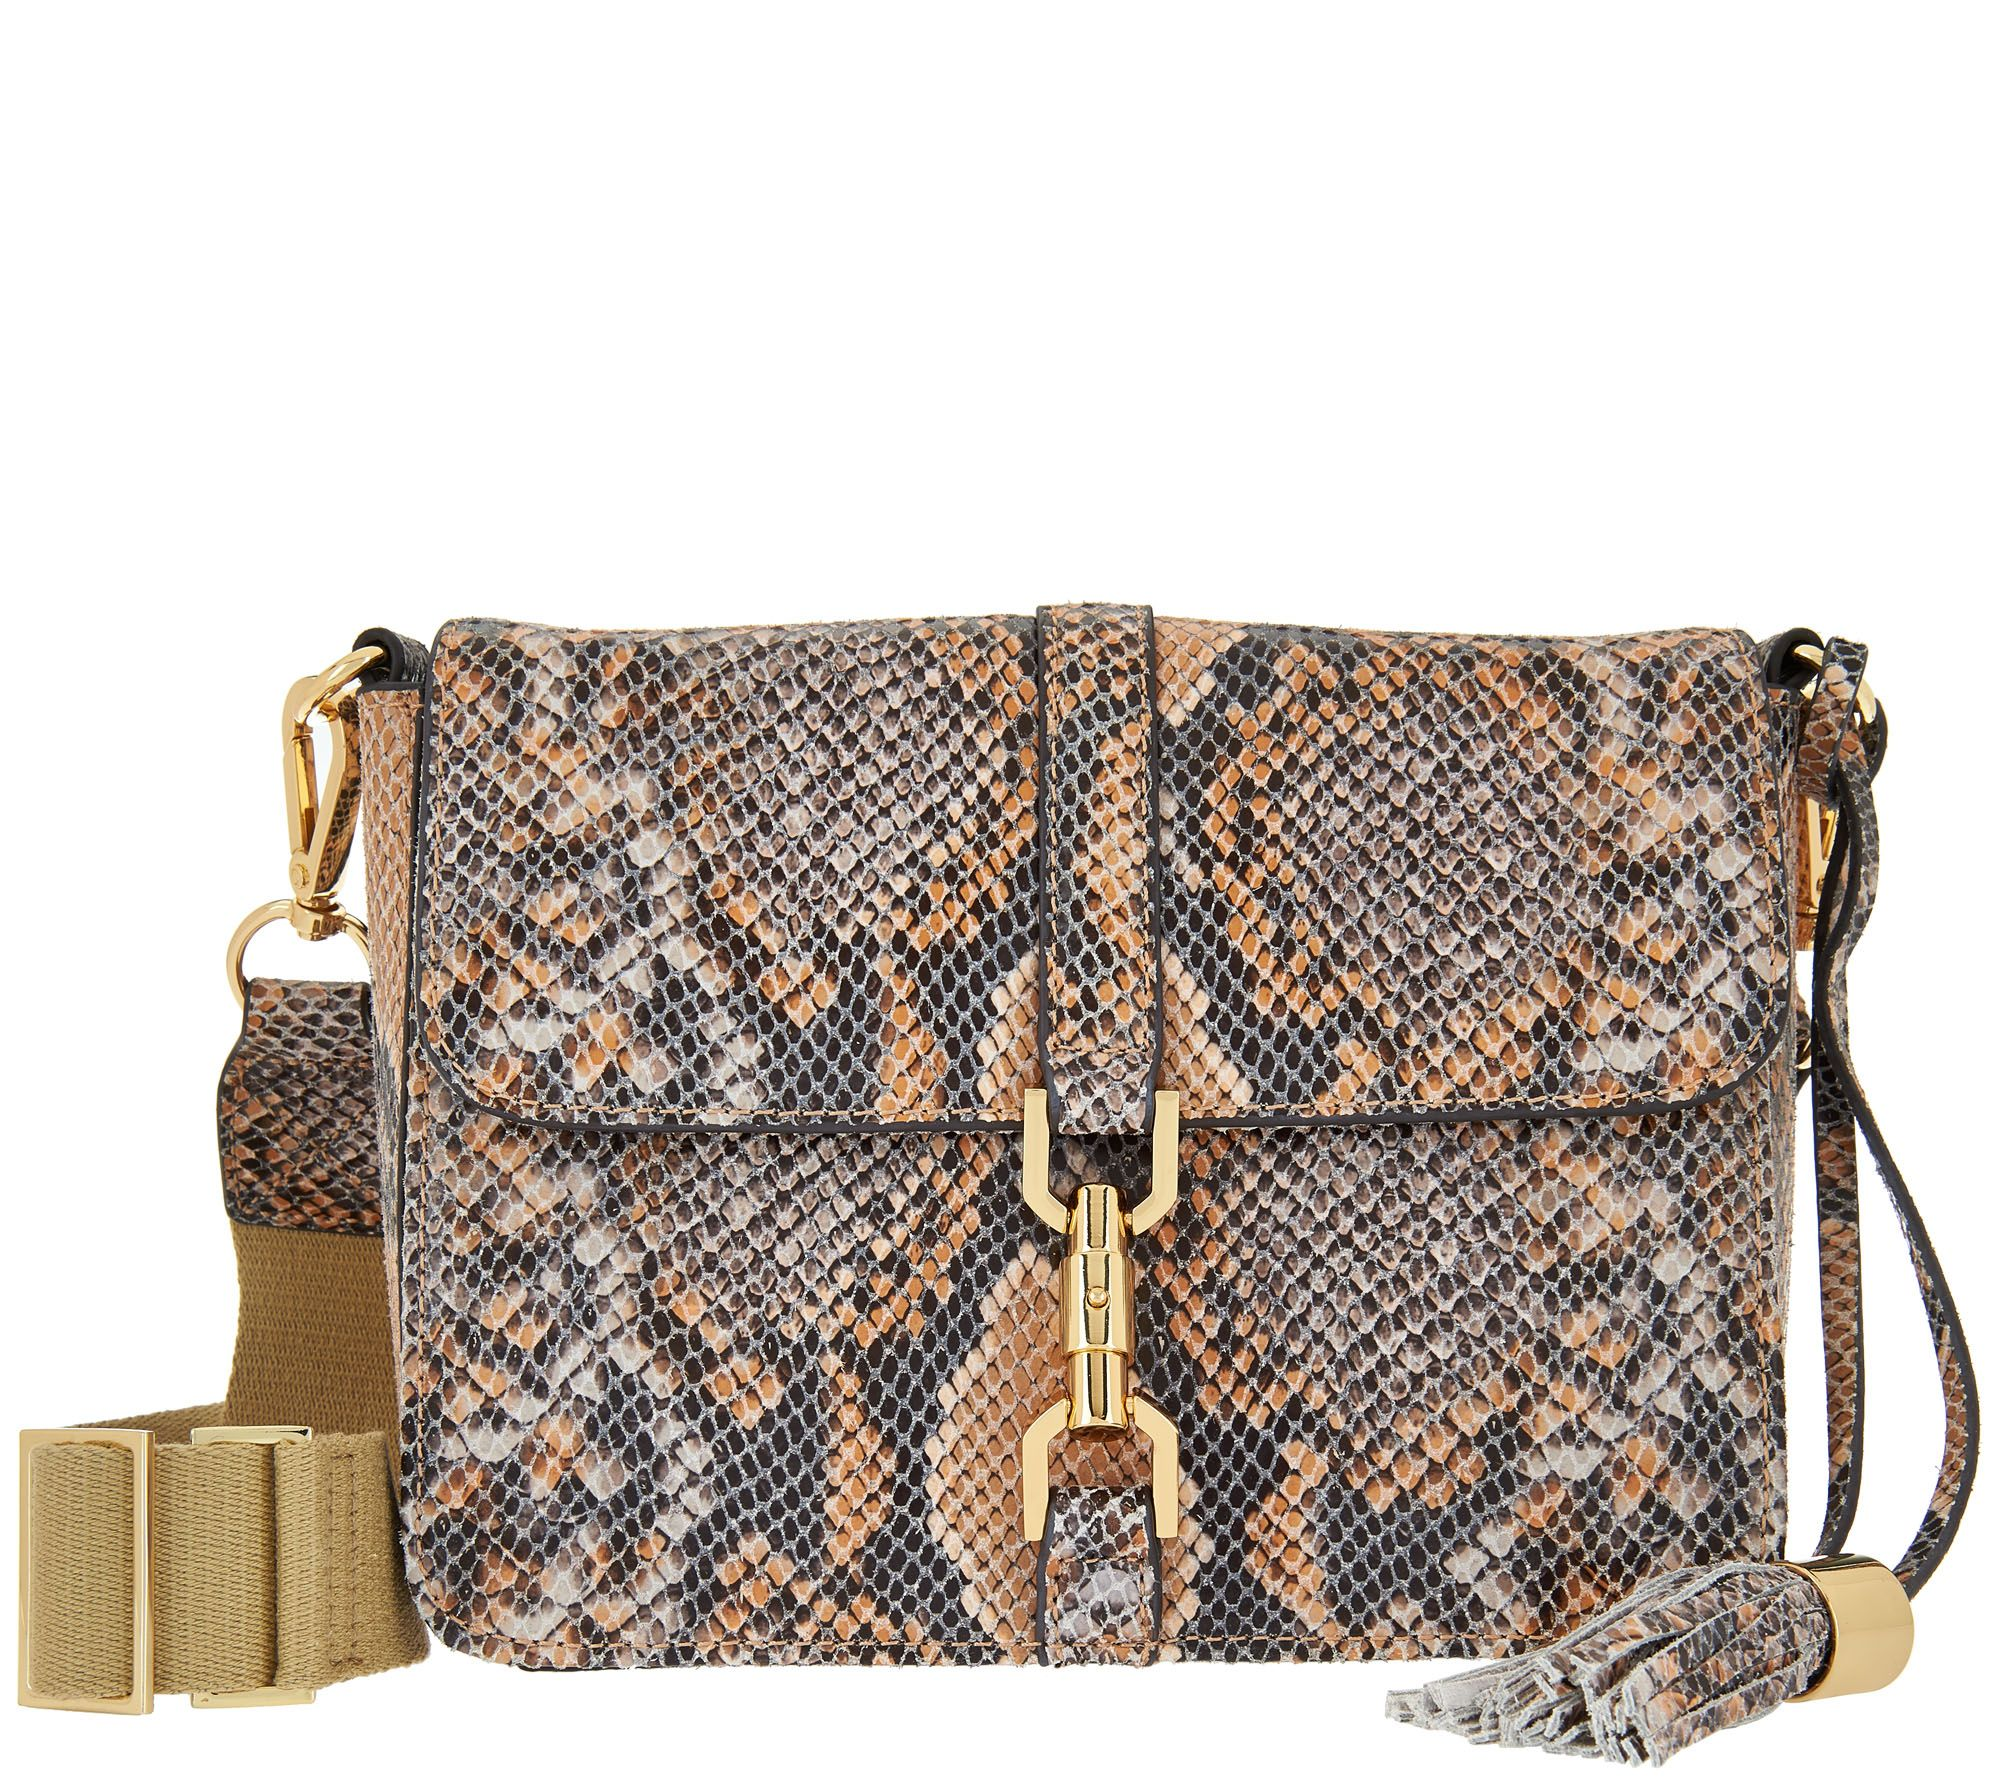 G.I.L.I. Leather Sporty Crossbody with Canvas Strap